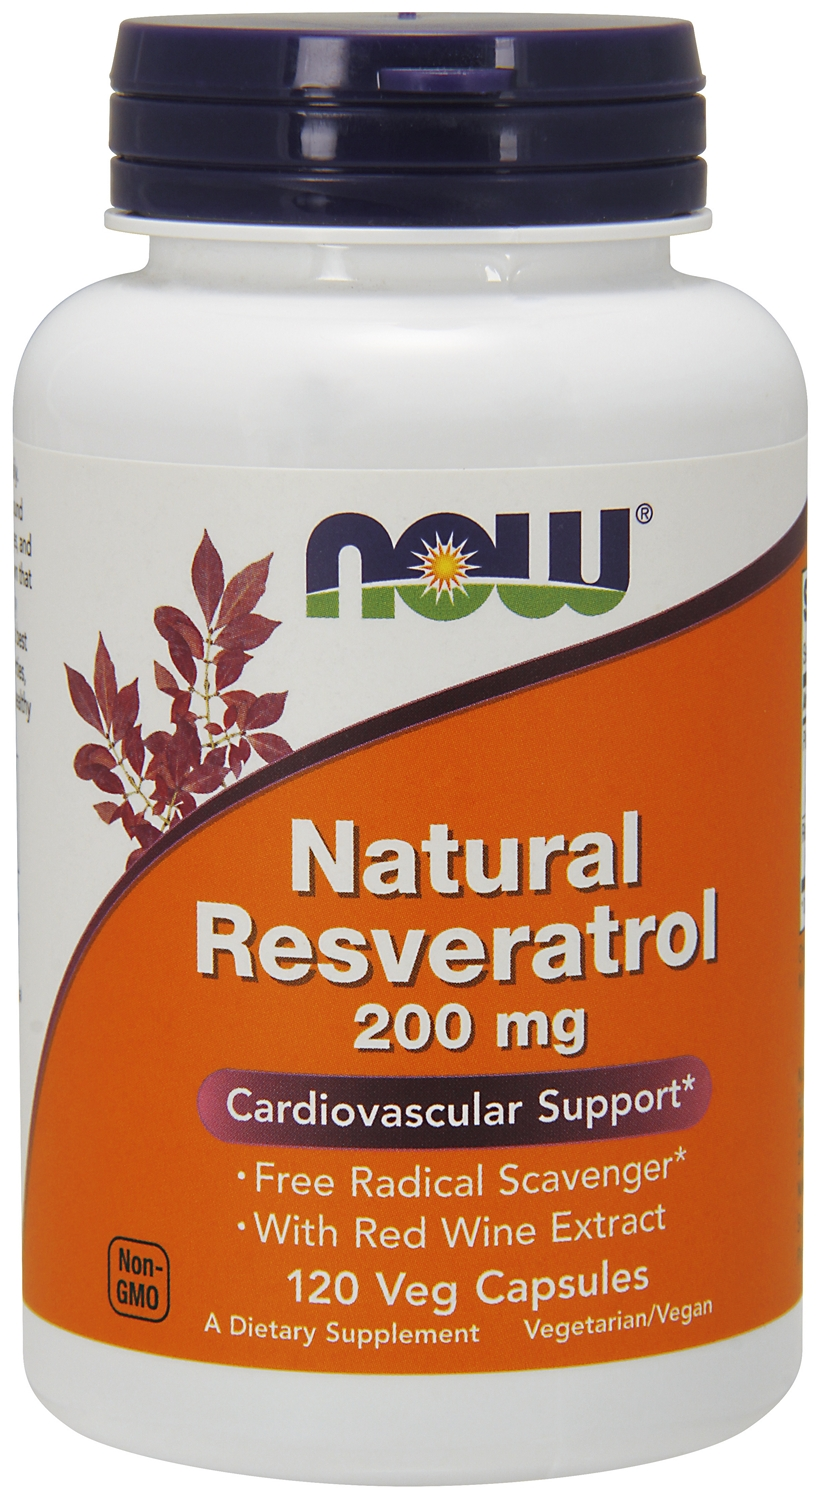 Natural Resveratrol 200 mg 120 Vcaps by NOW